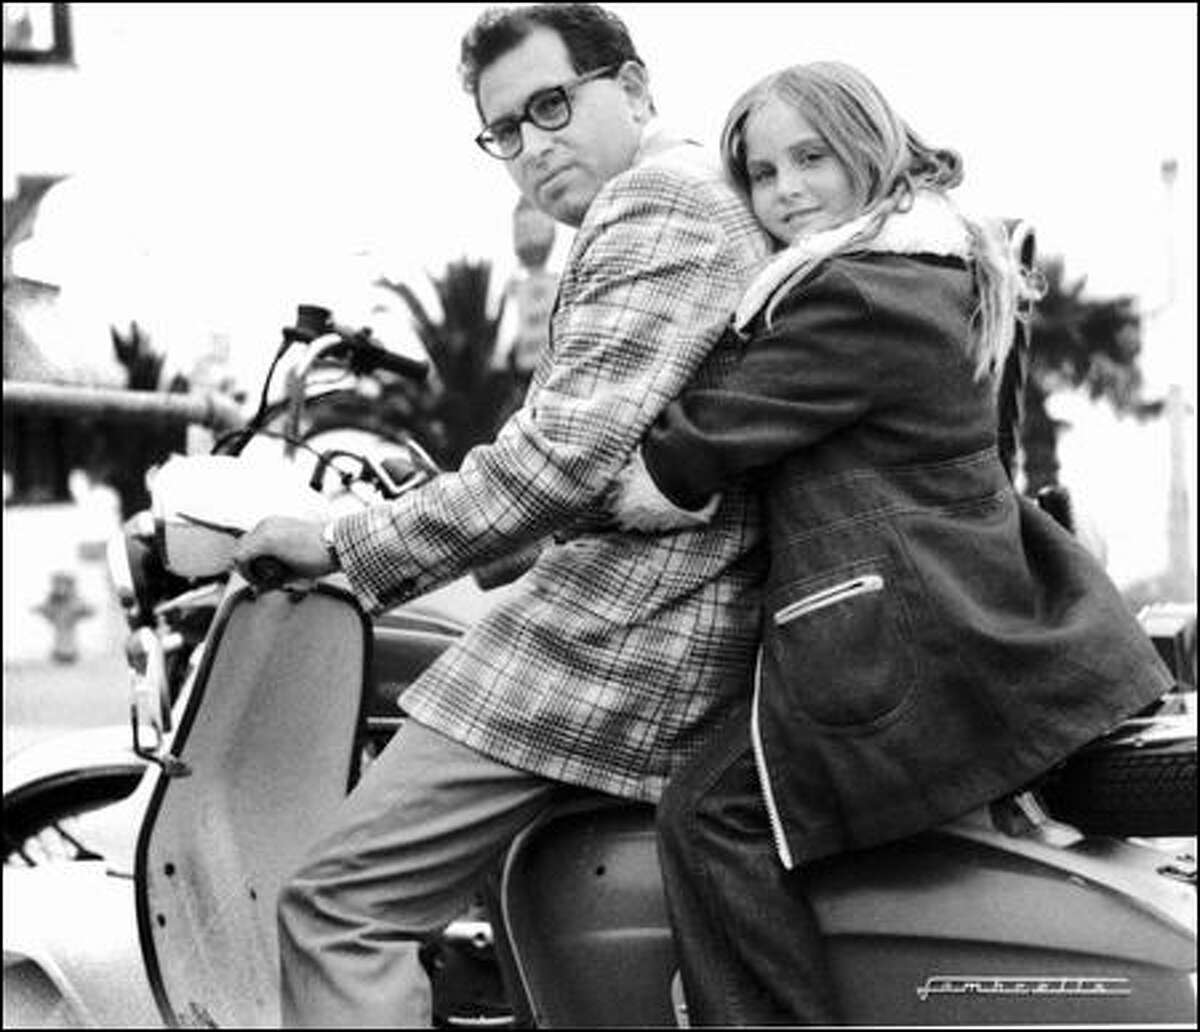 Delaney Ruston sits on a scooter with her father, Richard Ruston, in the Los Angeles area in 1975.